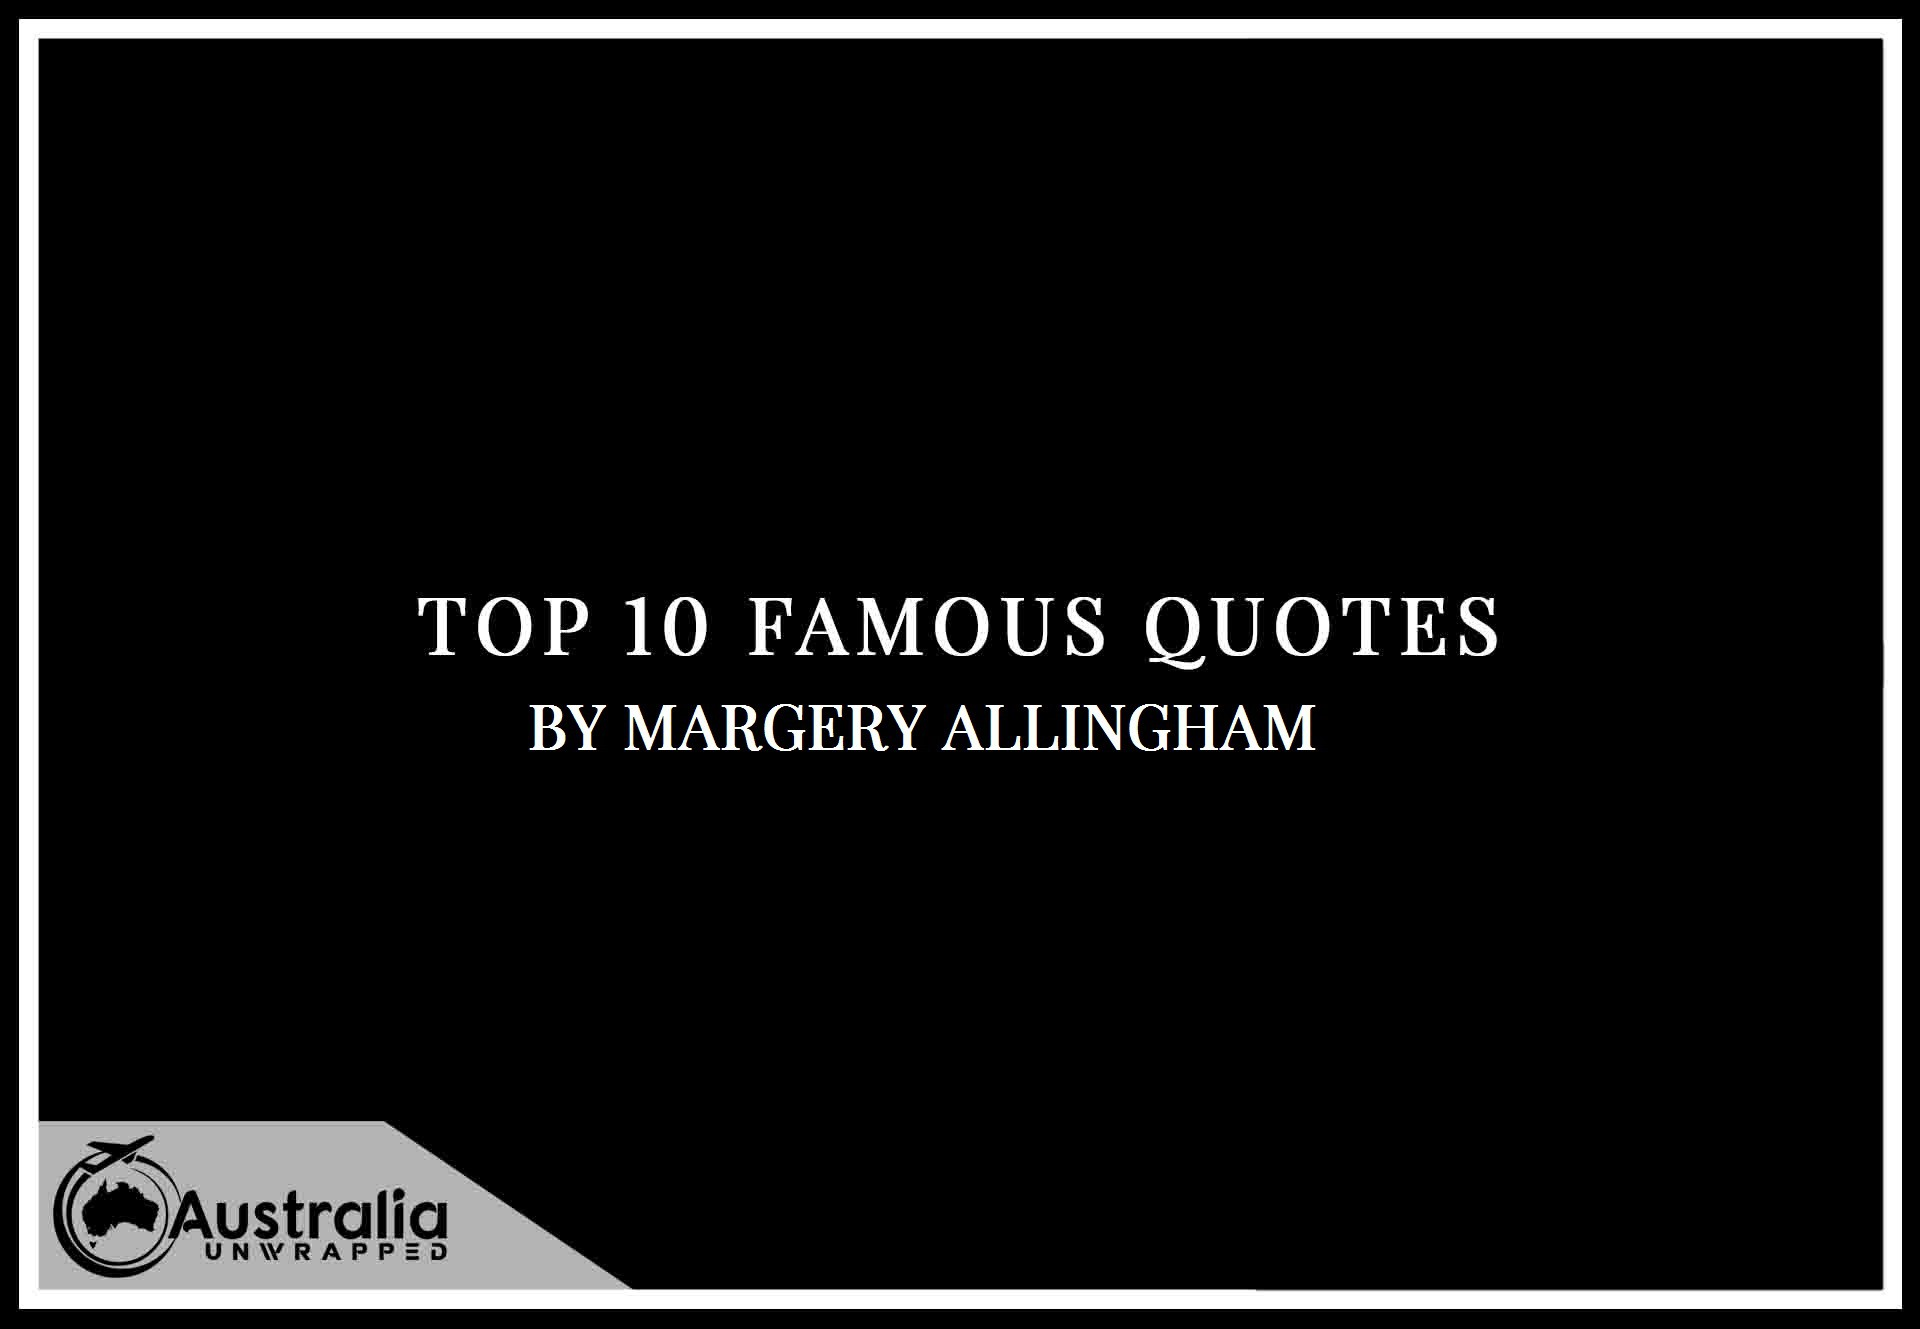 Margery Allingham's Top 10 Popular and Famous Quotes